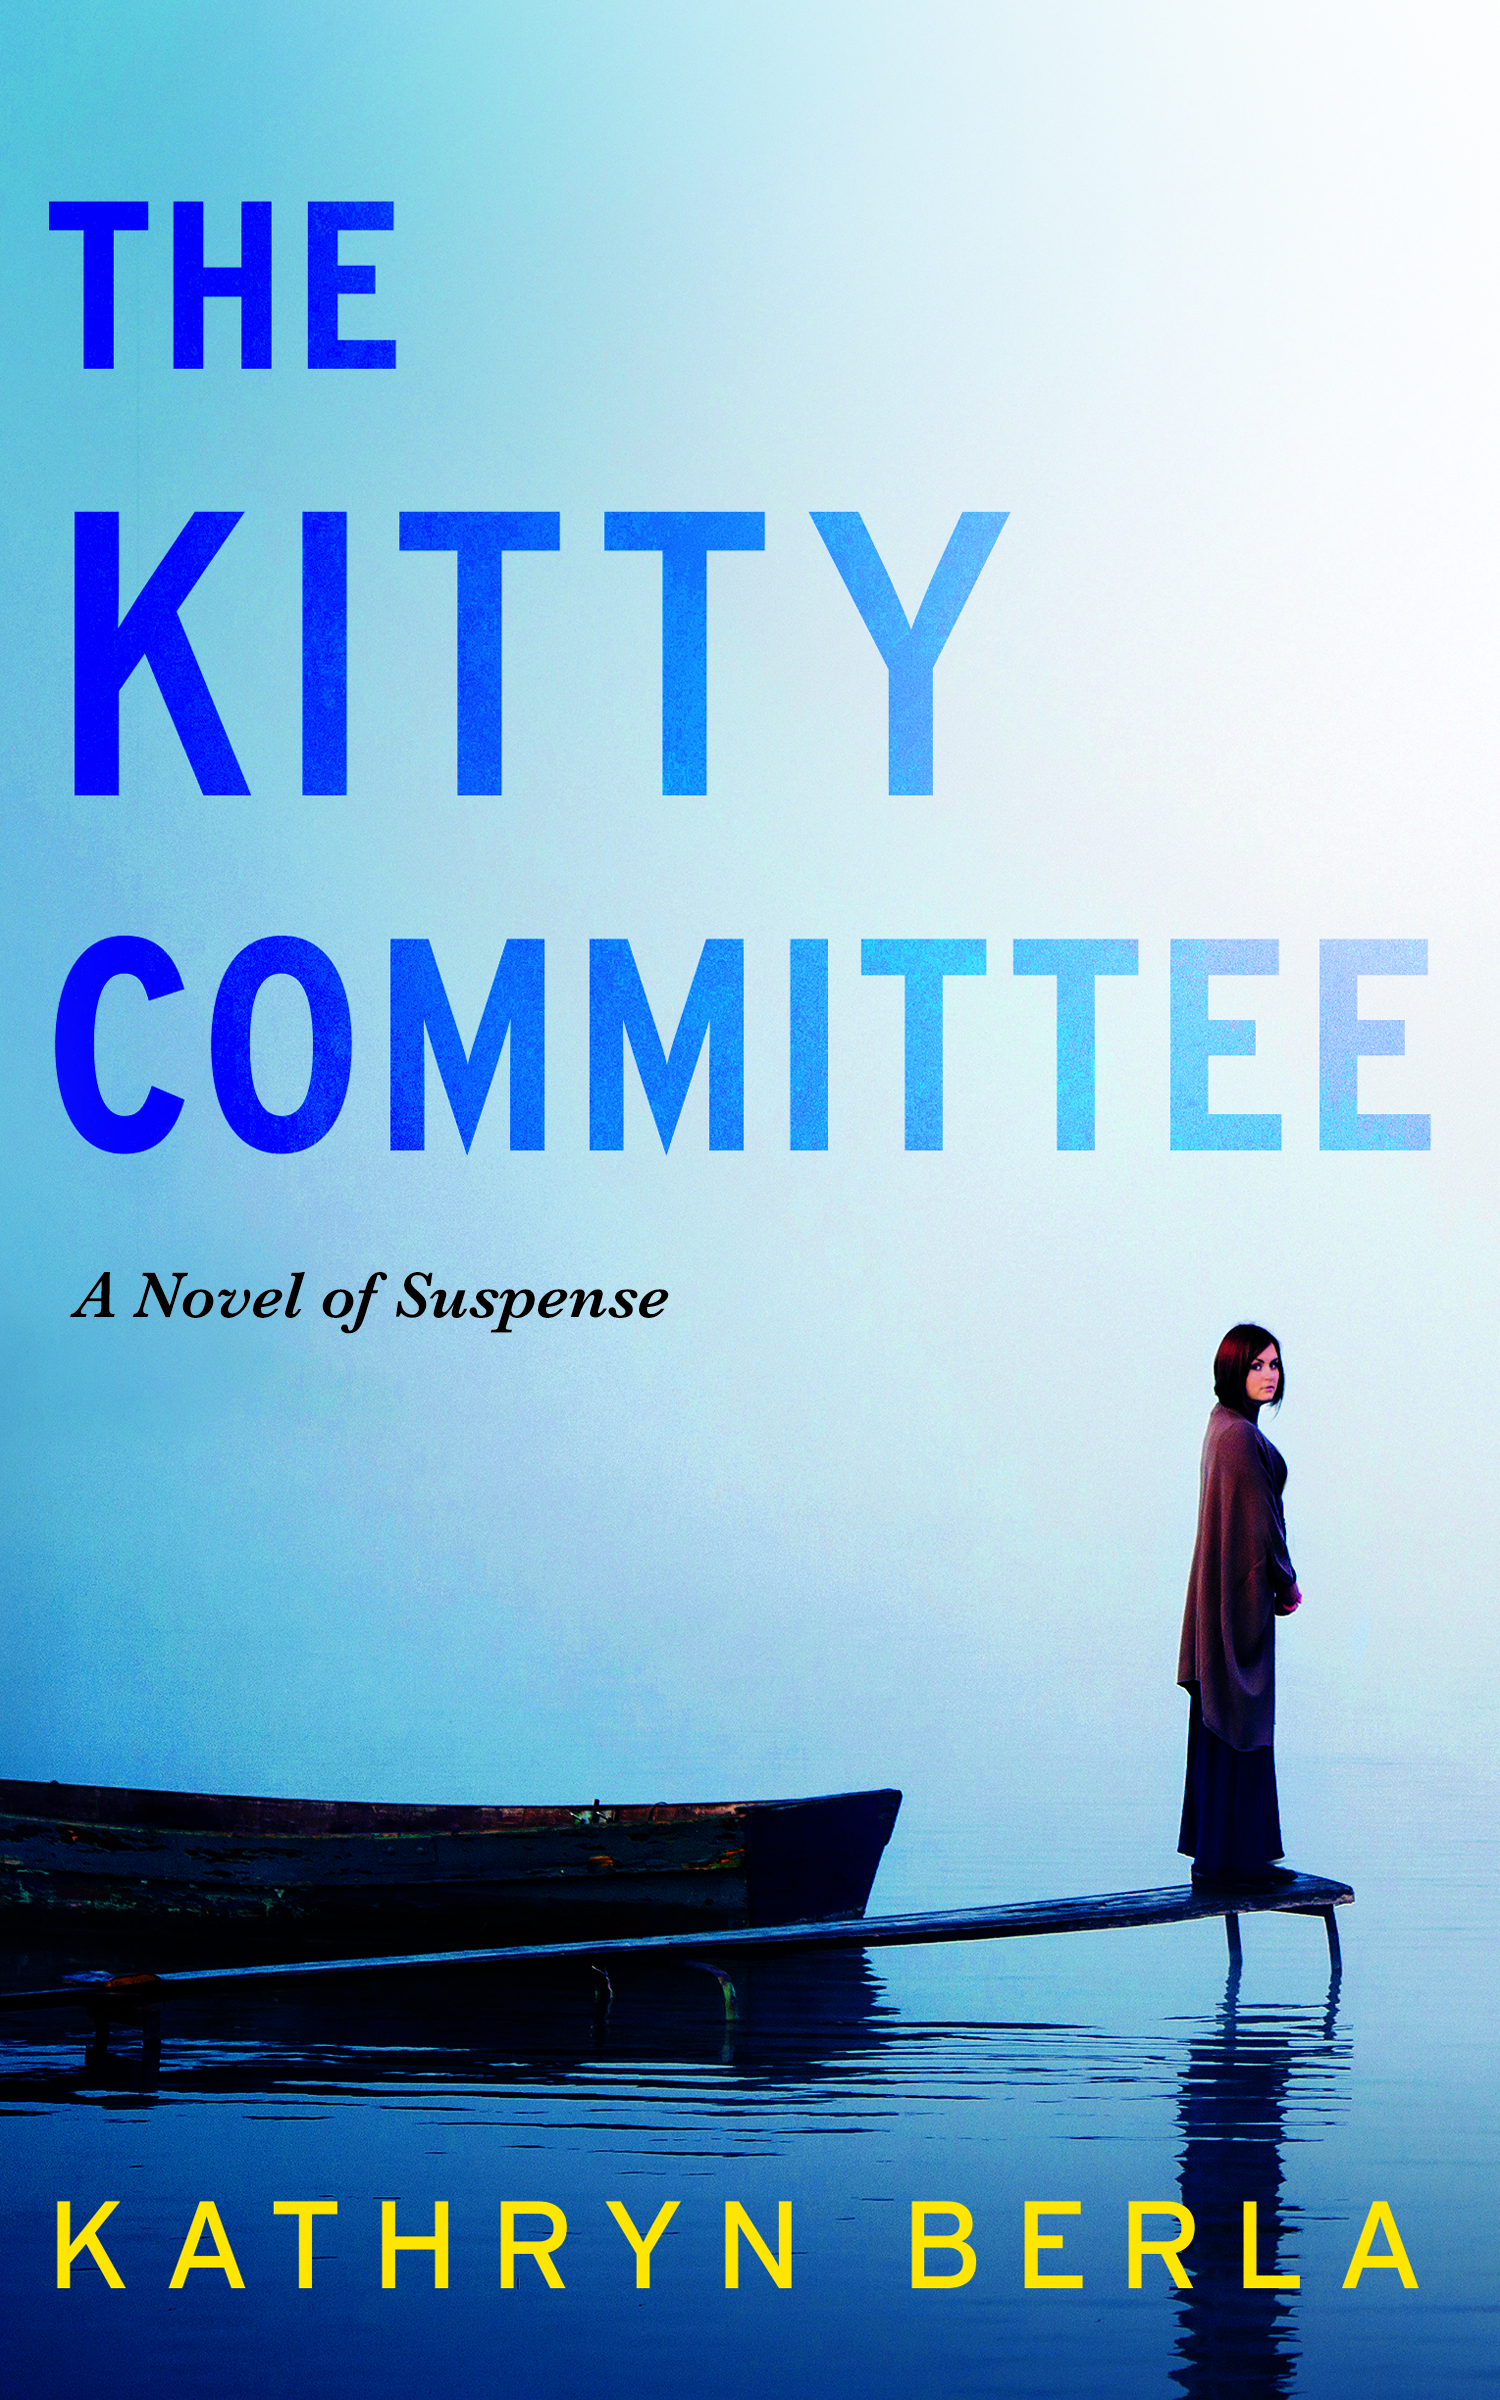 The Kitty Committee